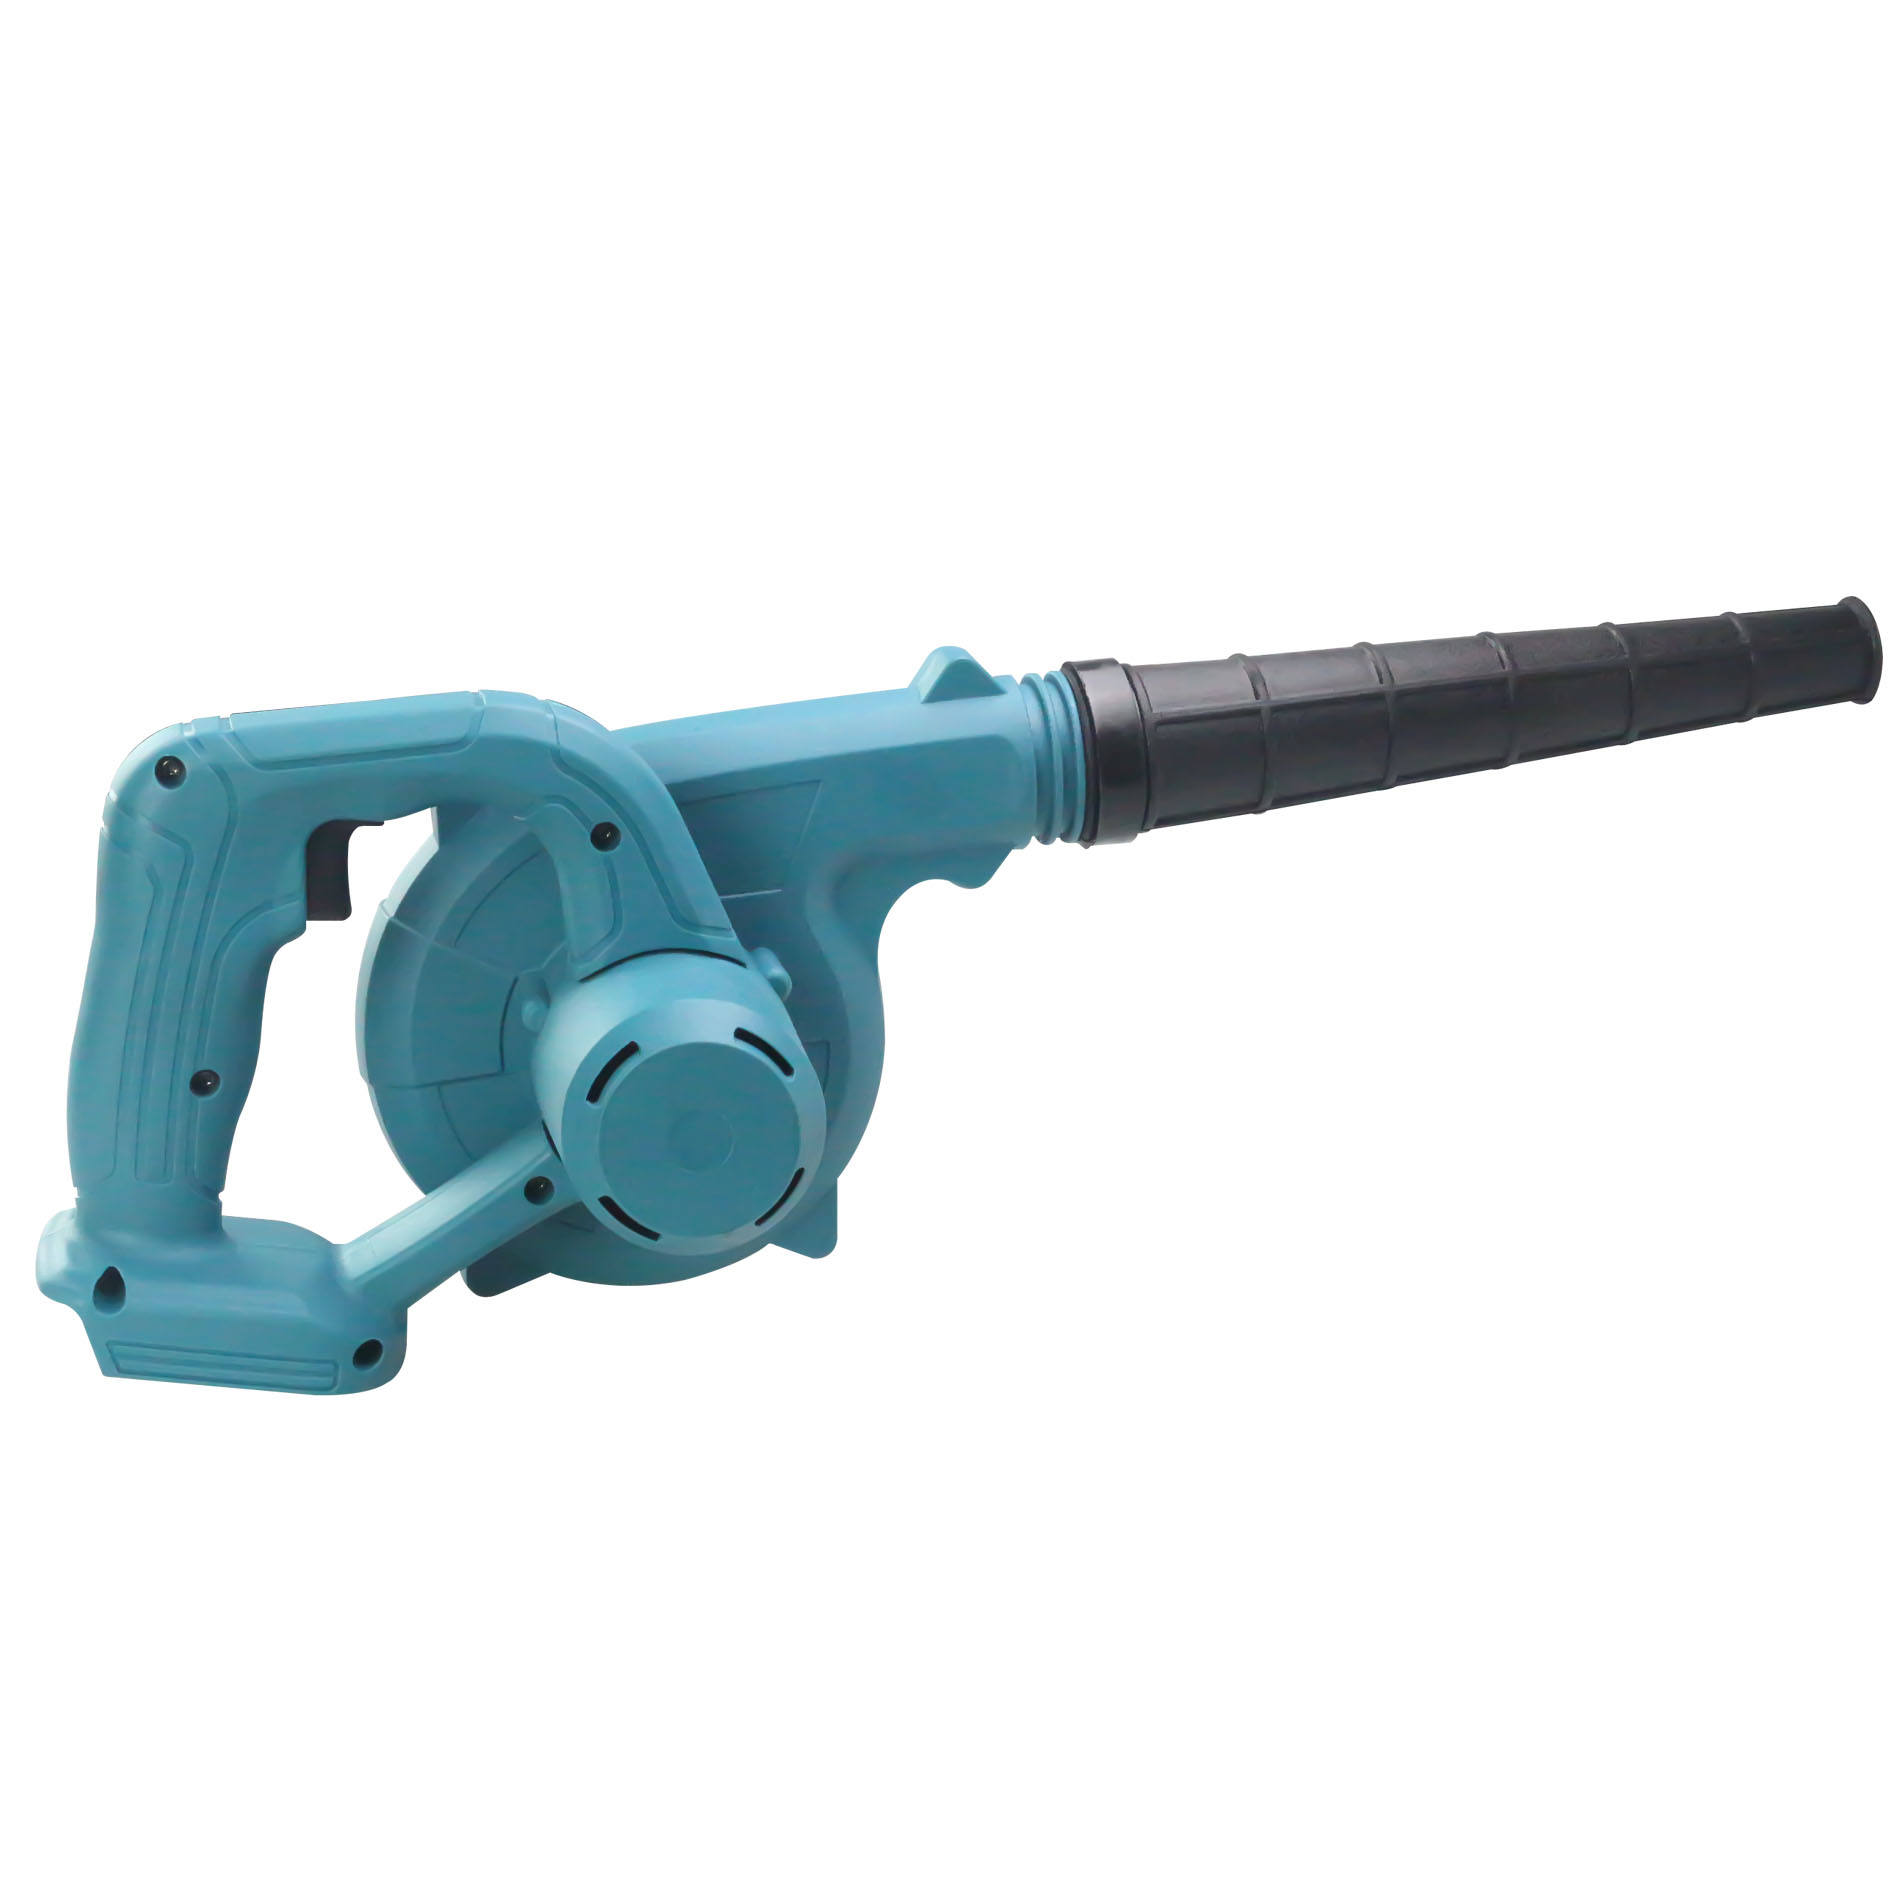 MKBL 18V Cordless Electric Leaf Blower For Makitas alternative tools